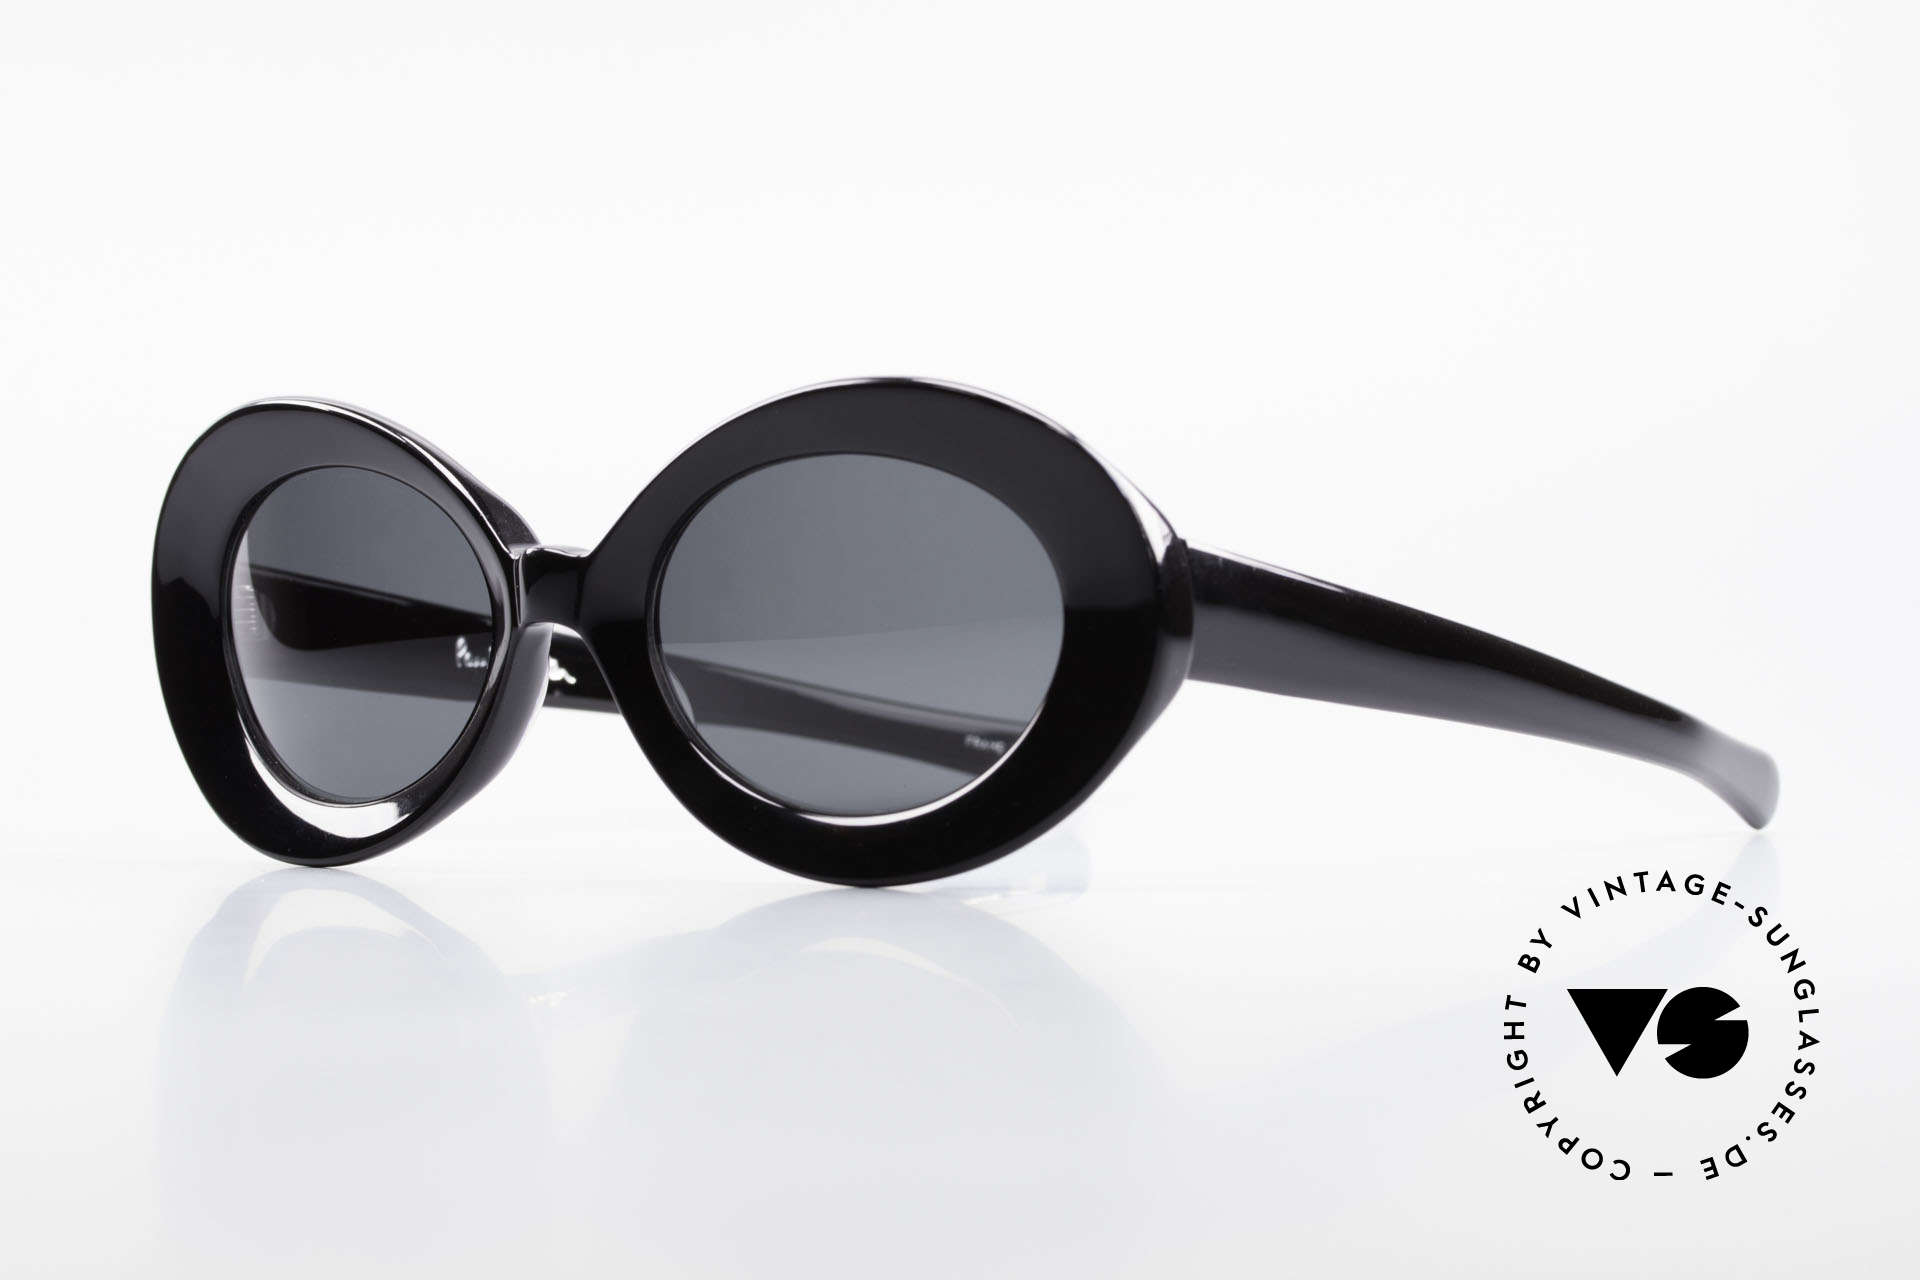 Paul Smith PS310 Oversized XL Jackie O Shades, this rare OLD Paul Smith Original is still 'made in Japan', Made for Women